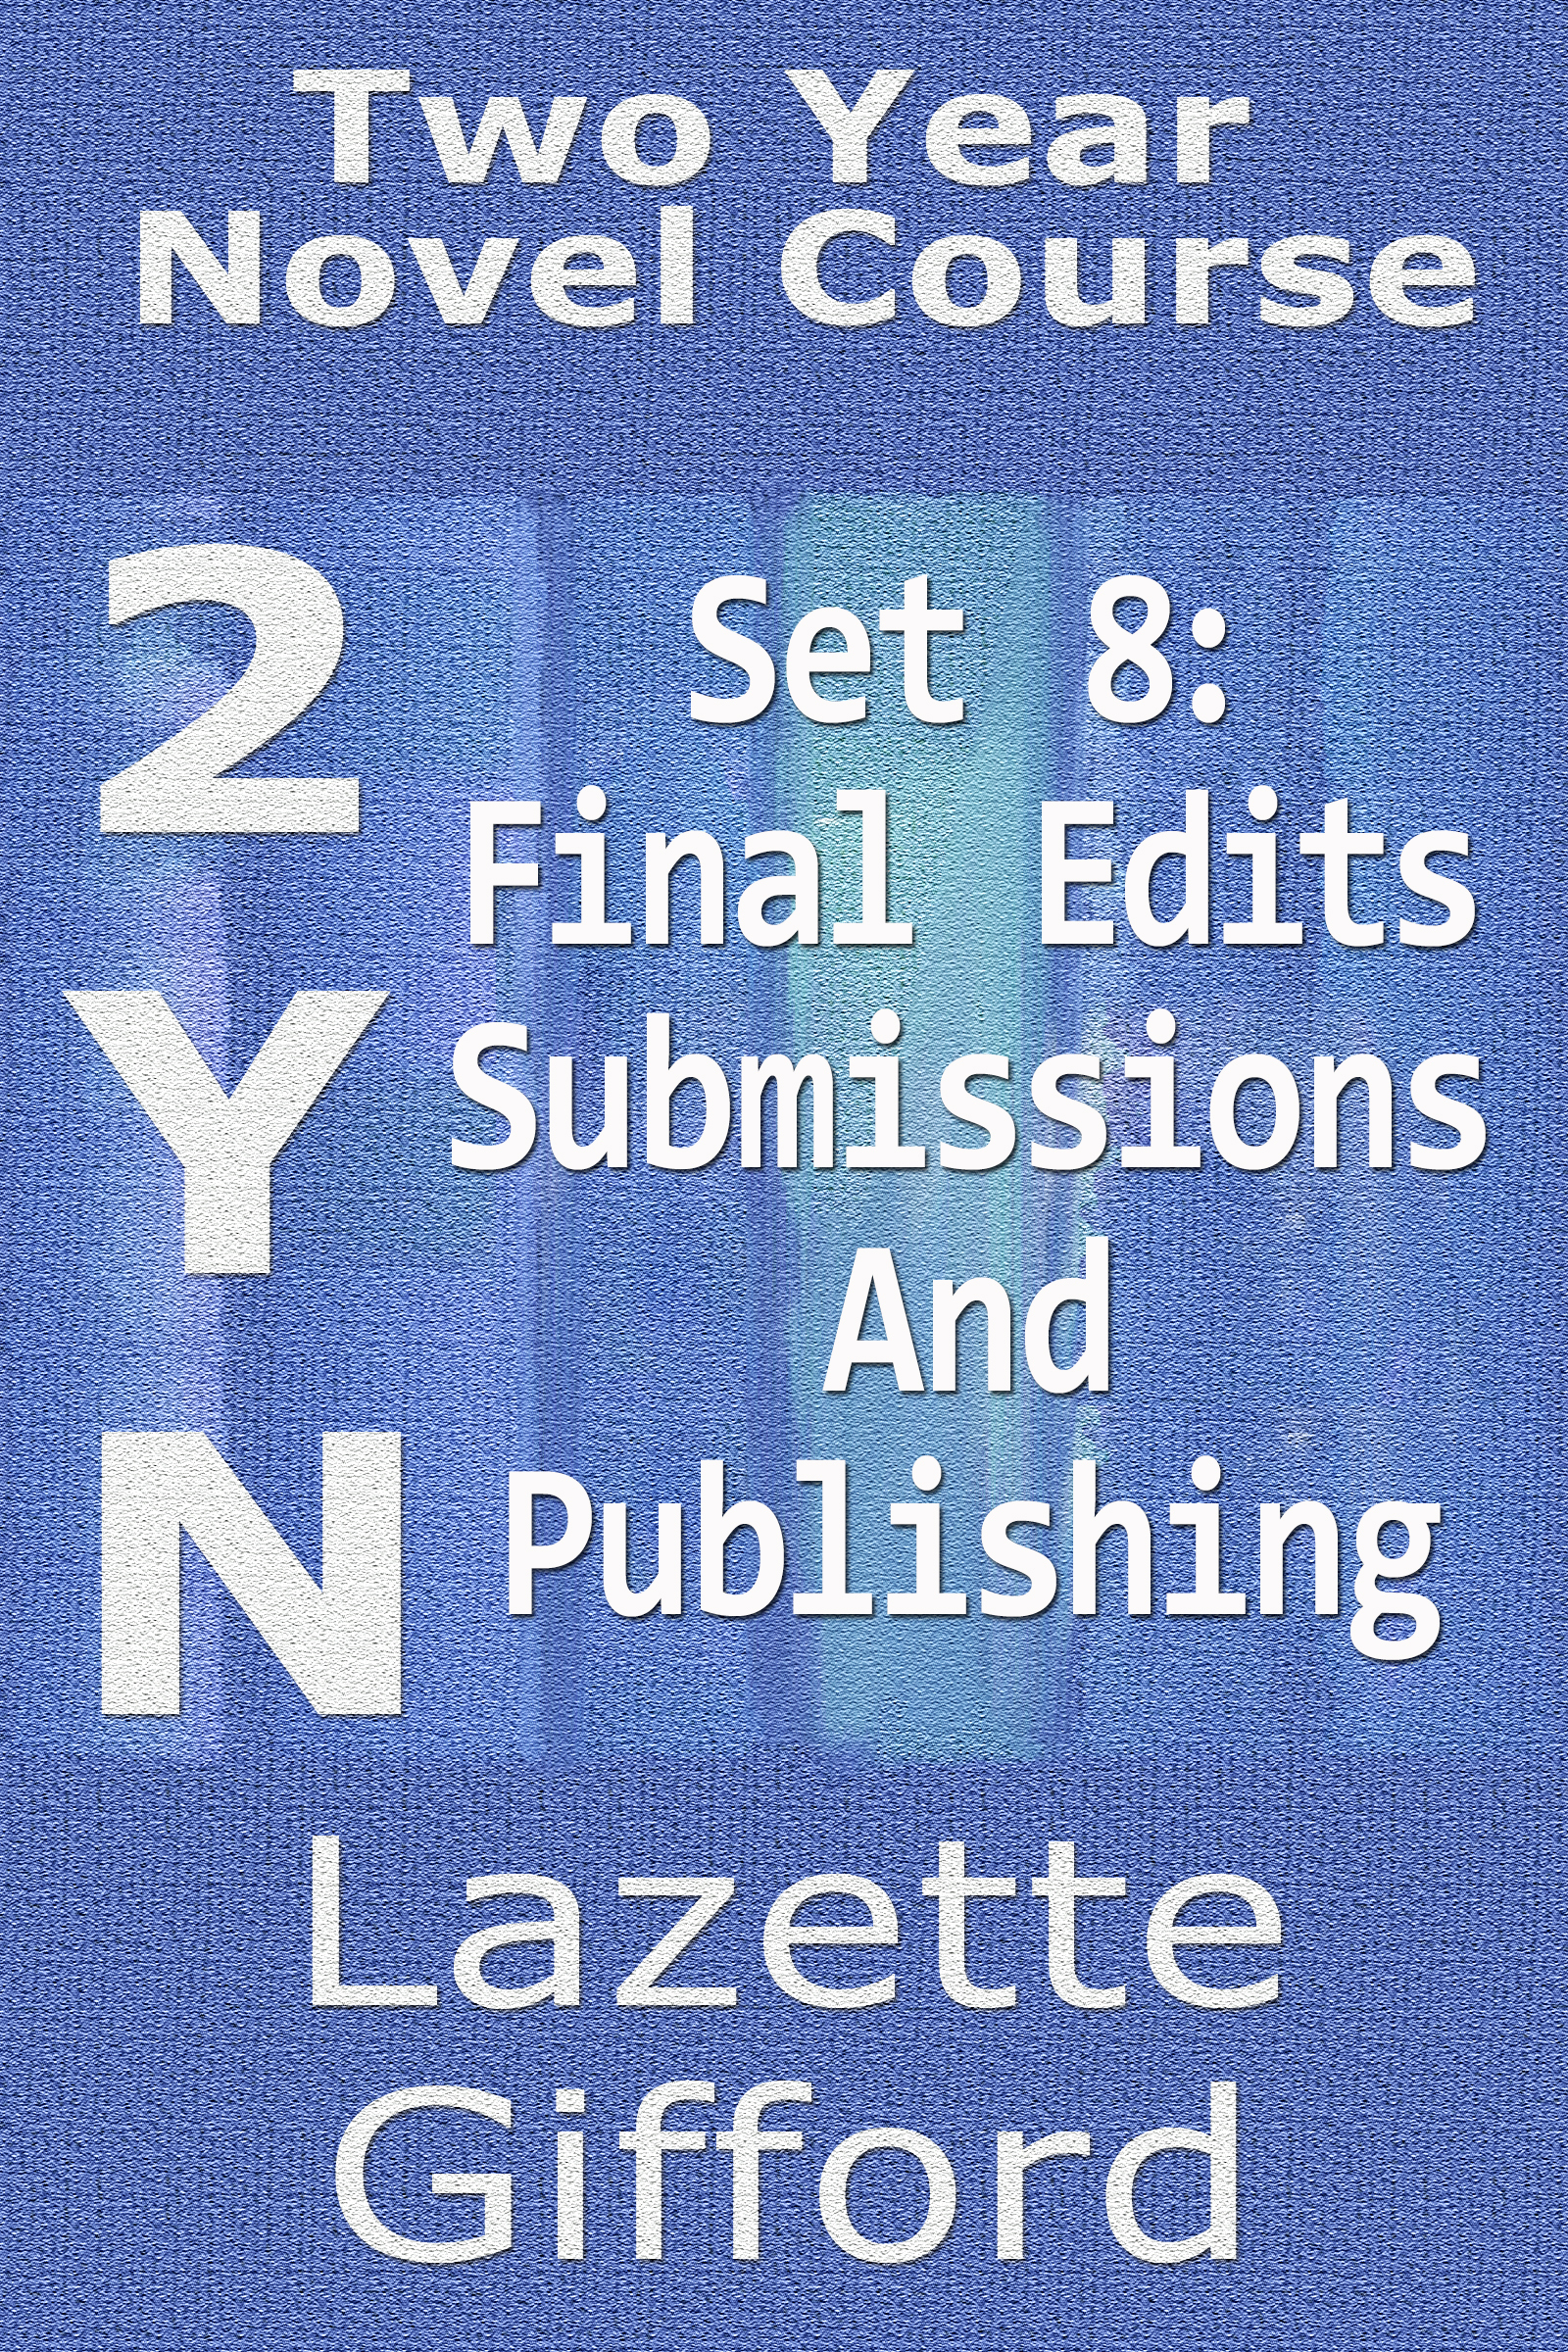 Two Year Novel Course: Set 8 (Final Edits/Submission and Publication)